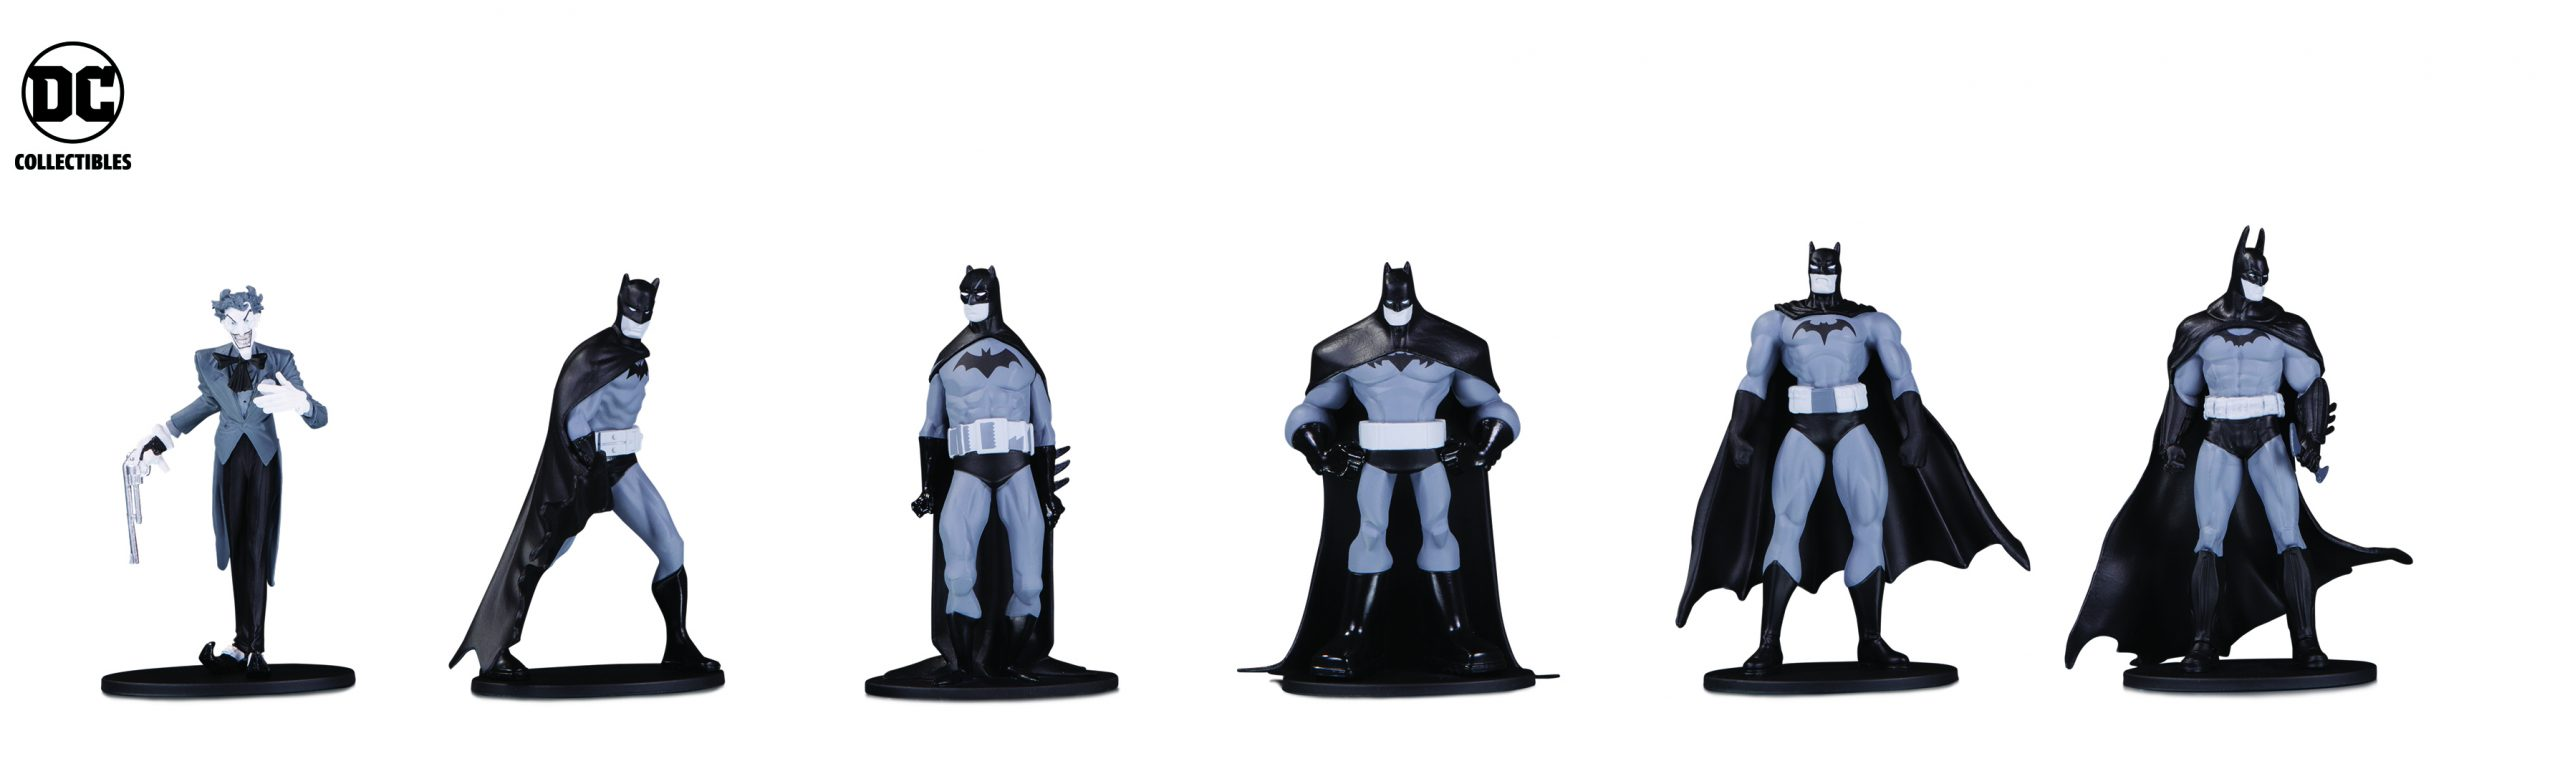 DC Expands Walmart Program To Include DC Collectibles